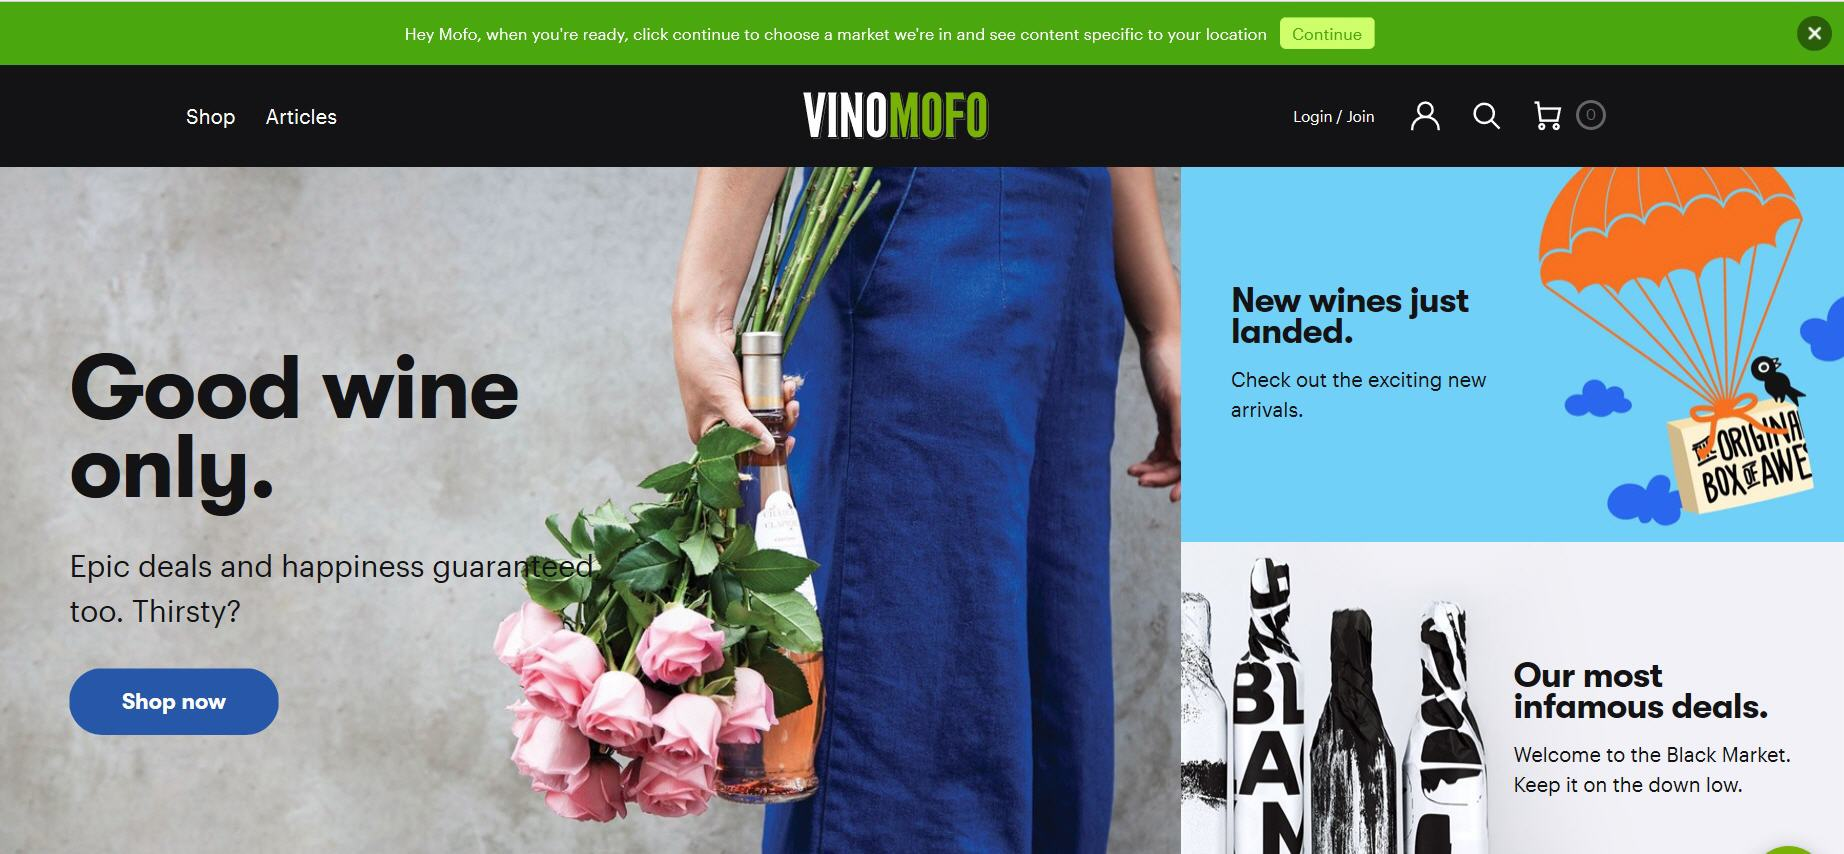 Vinomofo website homepage.